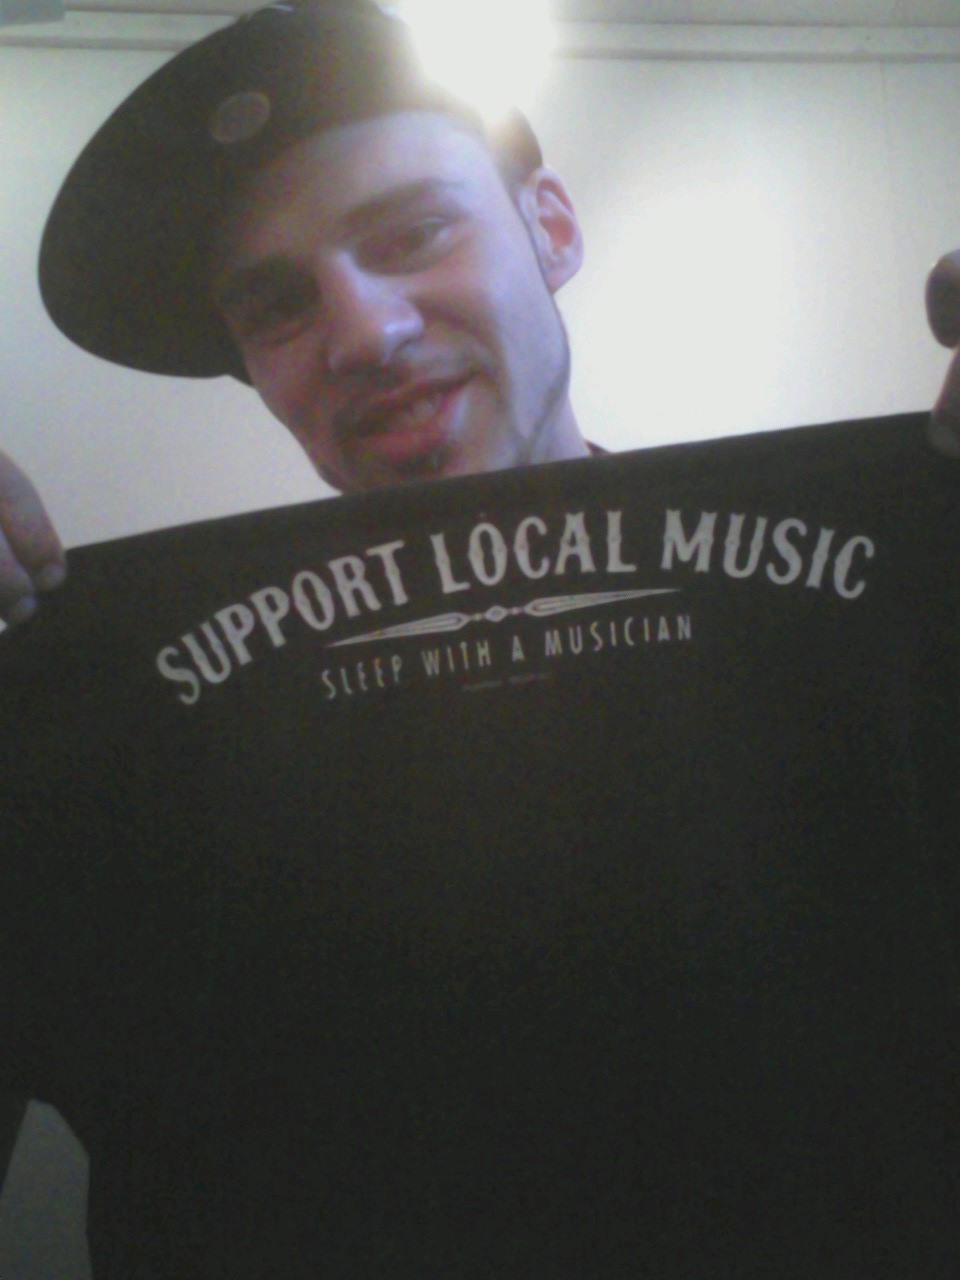 DO WHAT THE SHIRT SAYS!! SUPPORT LOCAL MUSIC!